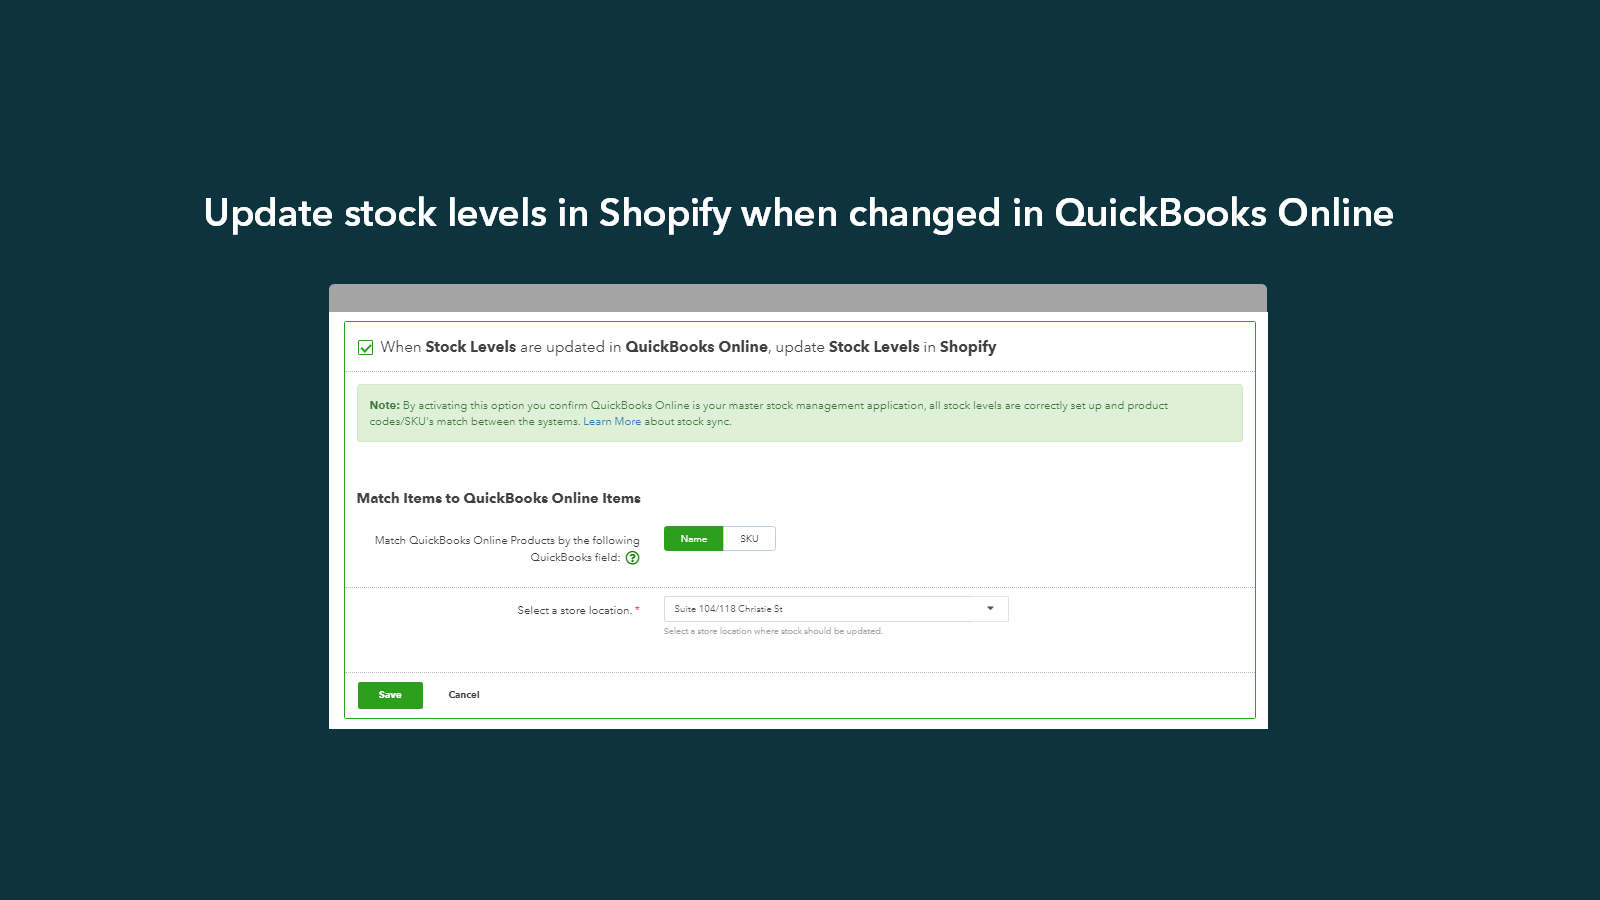 Update stock levels in Shopify when changed in QuickBooks Online